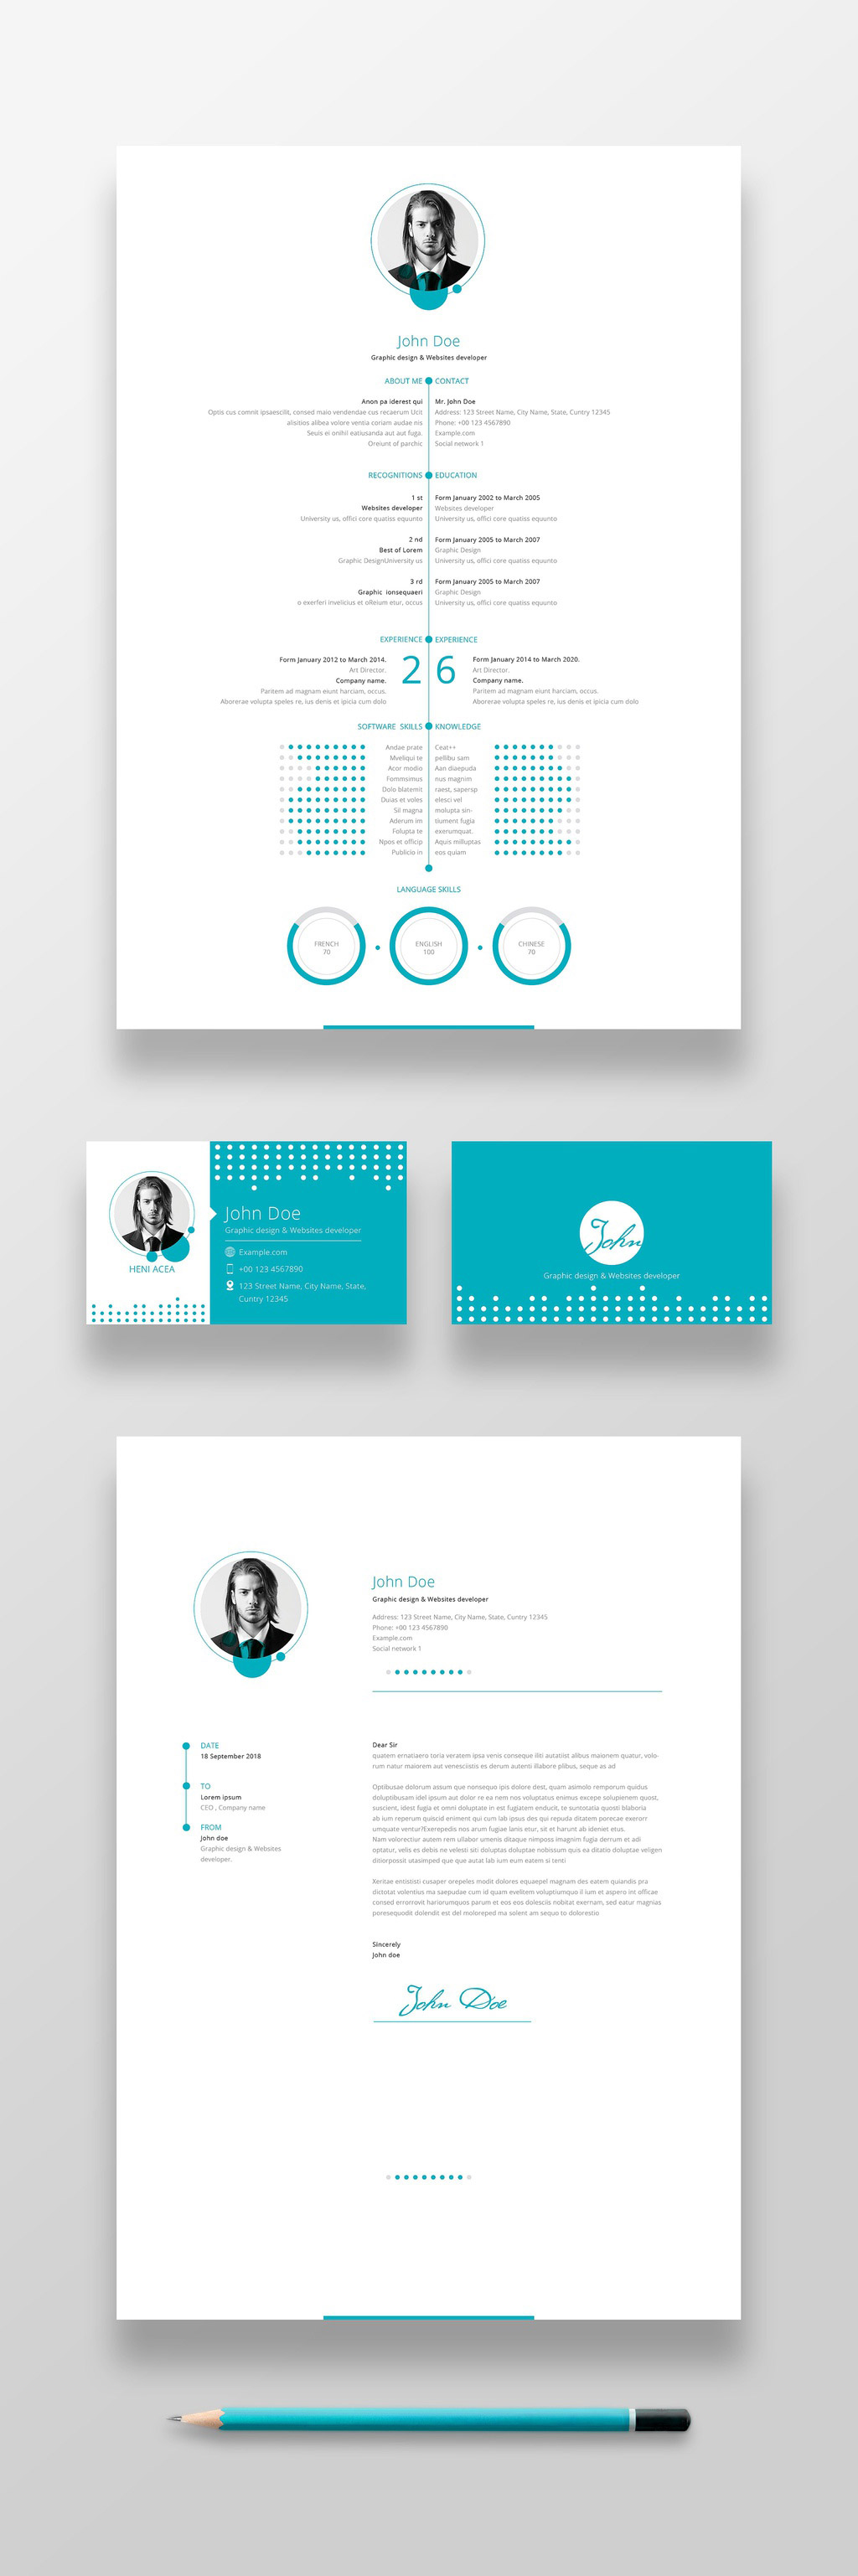 Blue Resume, CV, Cover Letter, and Business Card Templates